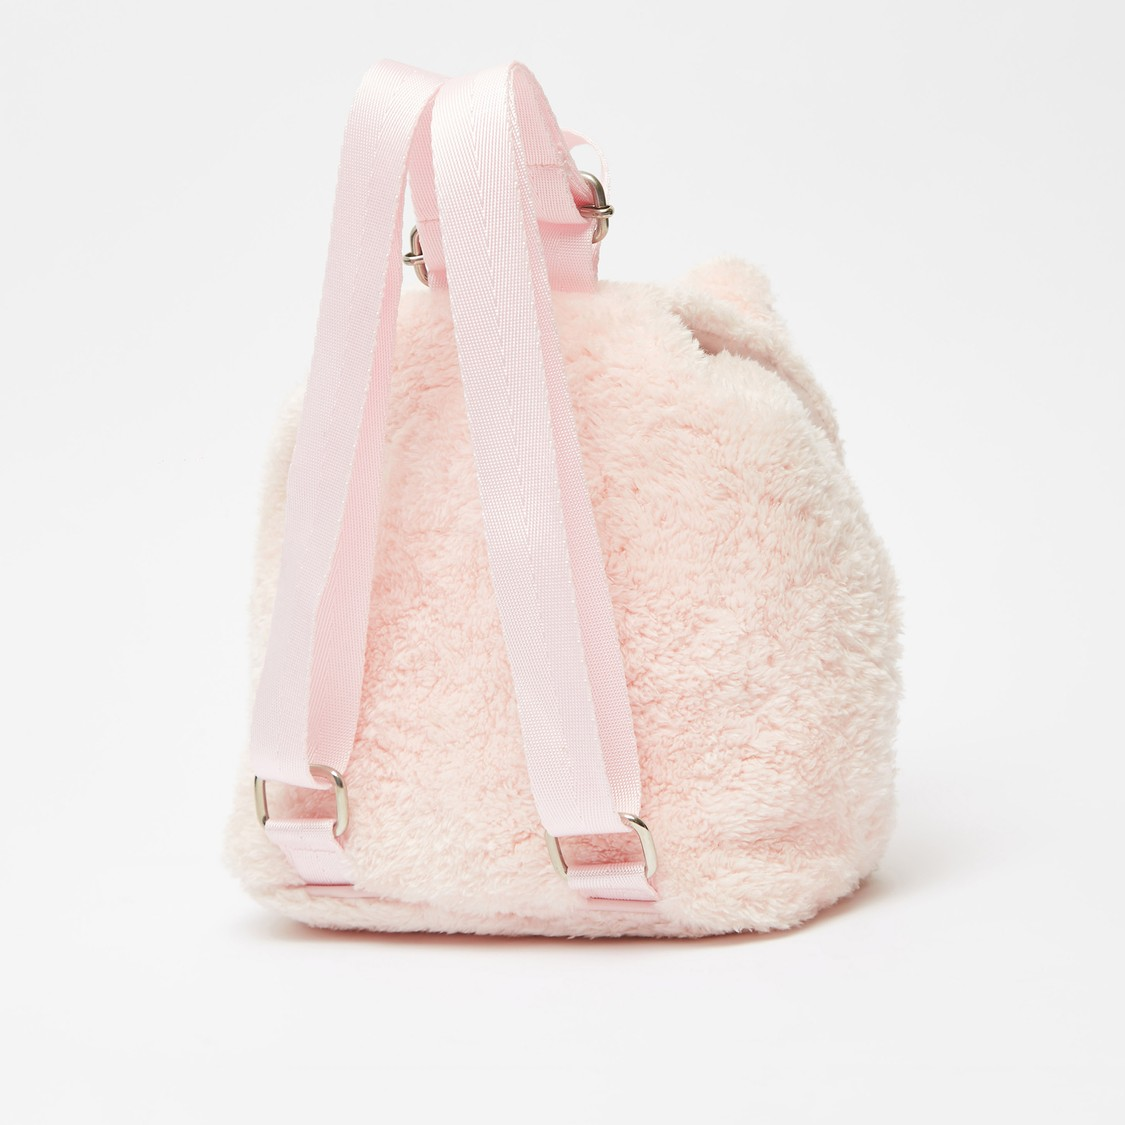 Unicorn Applique Detail Plush Backpack with Drawstring Closure